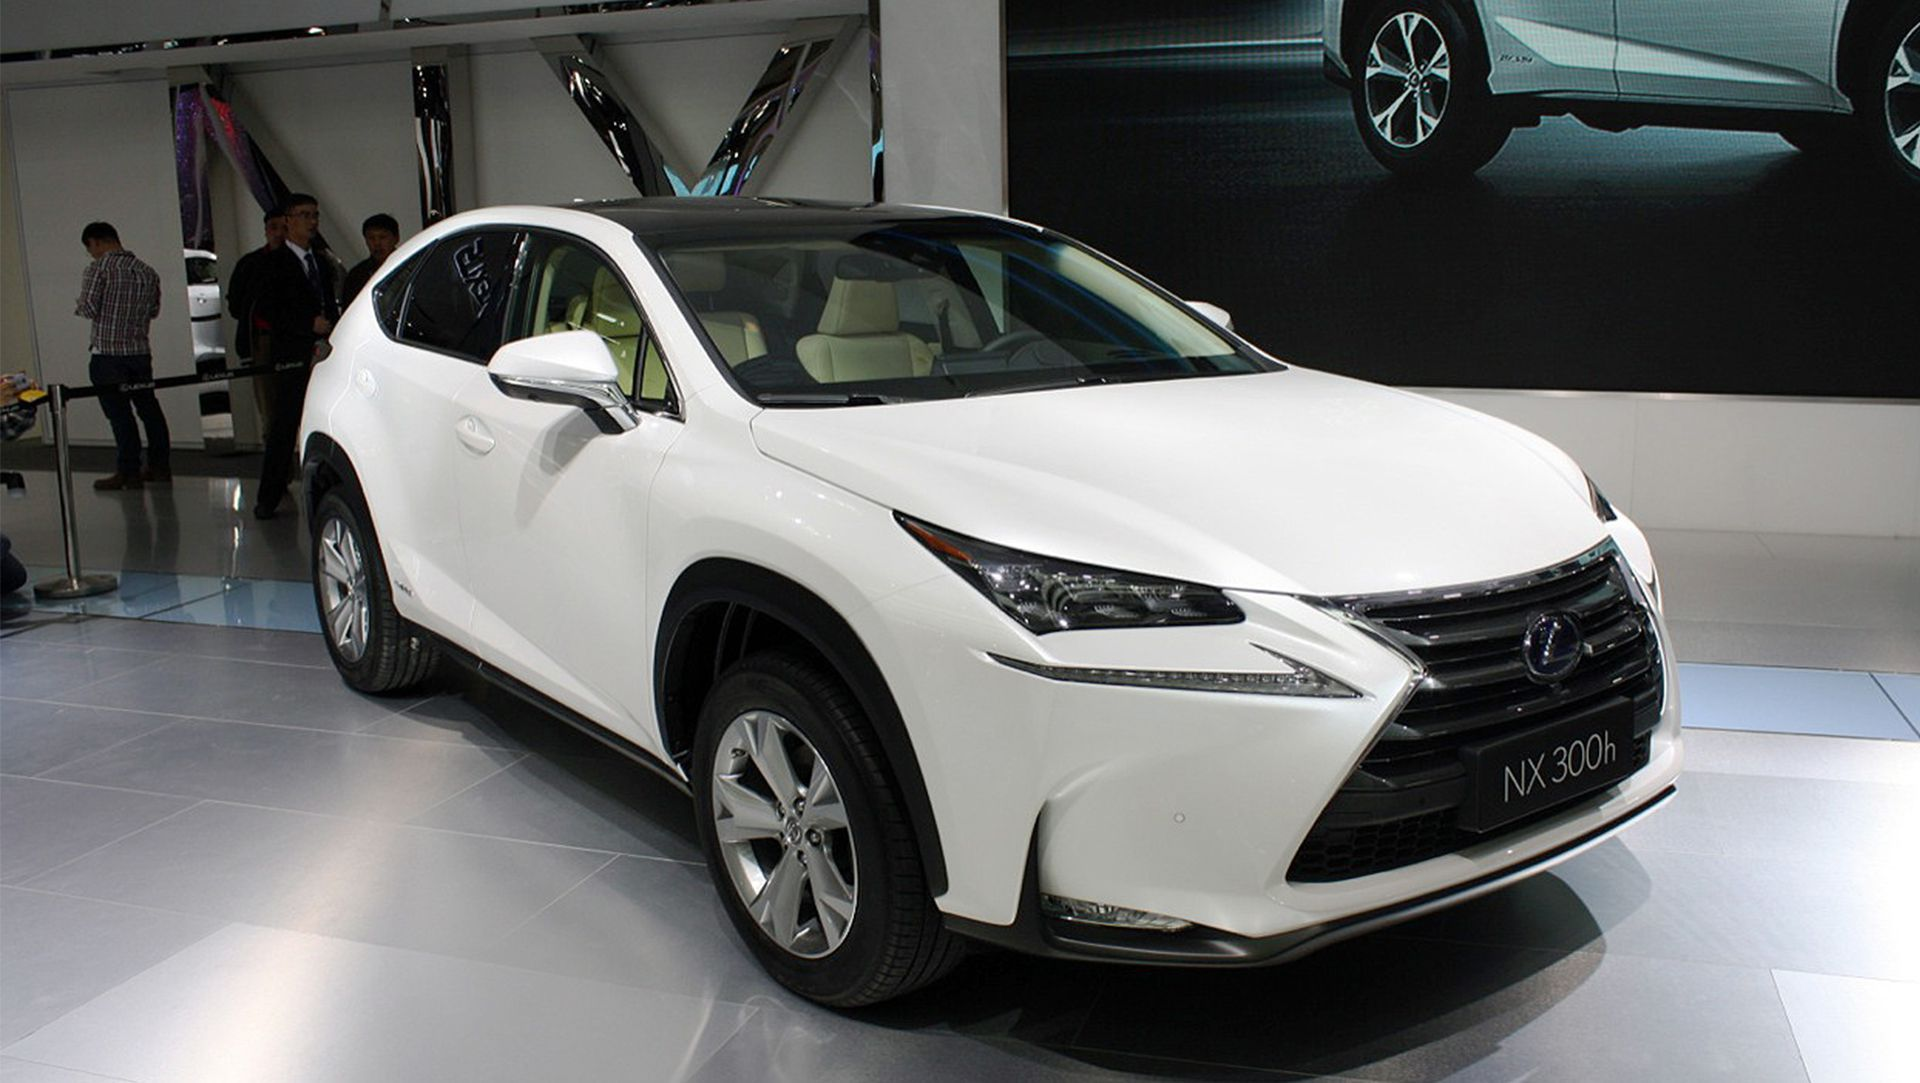 makes specs is radka lexus news car s models photos blog